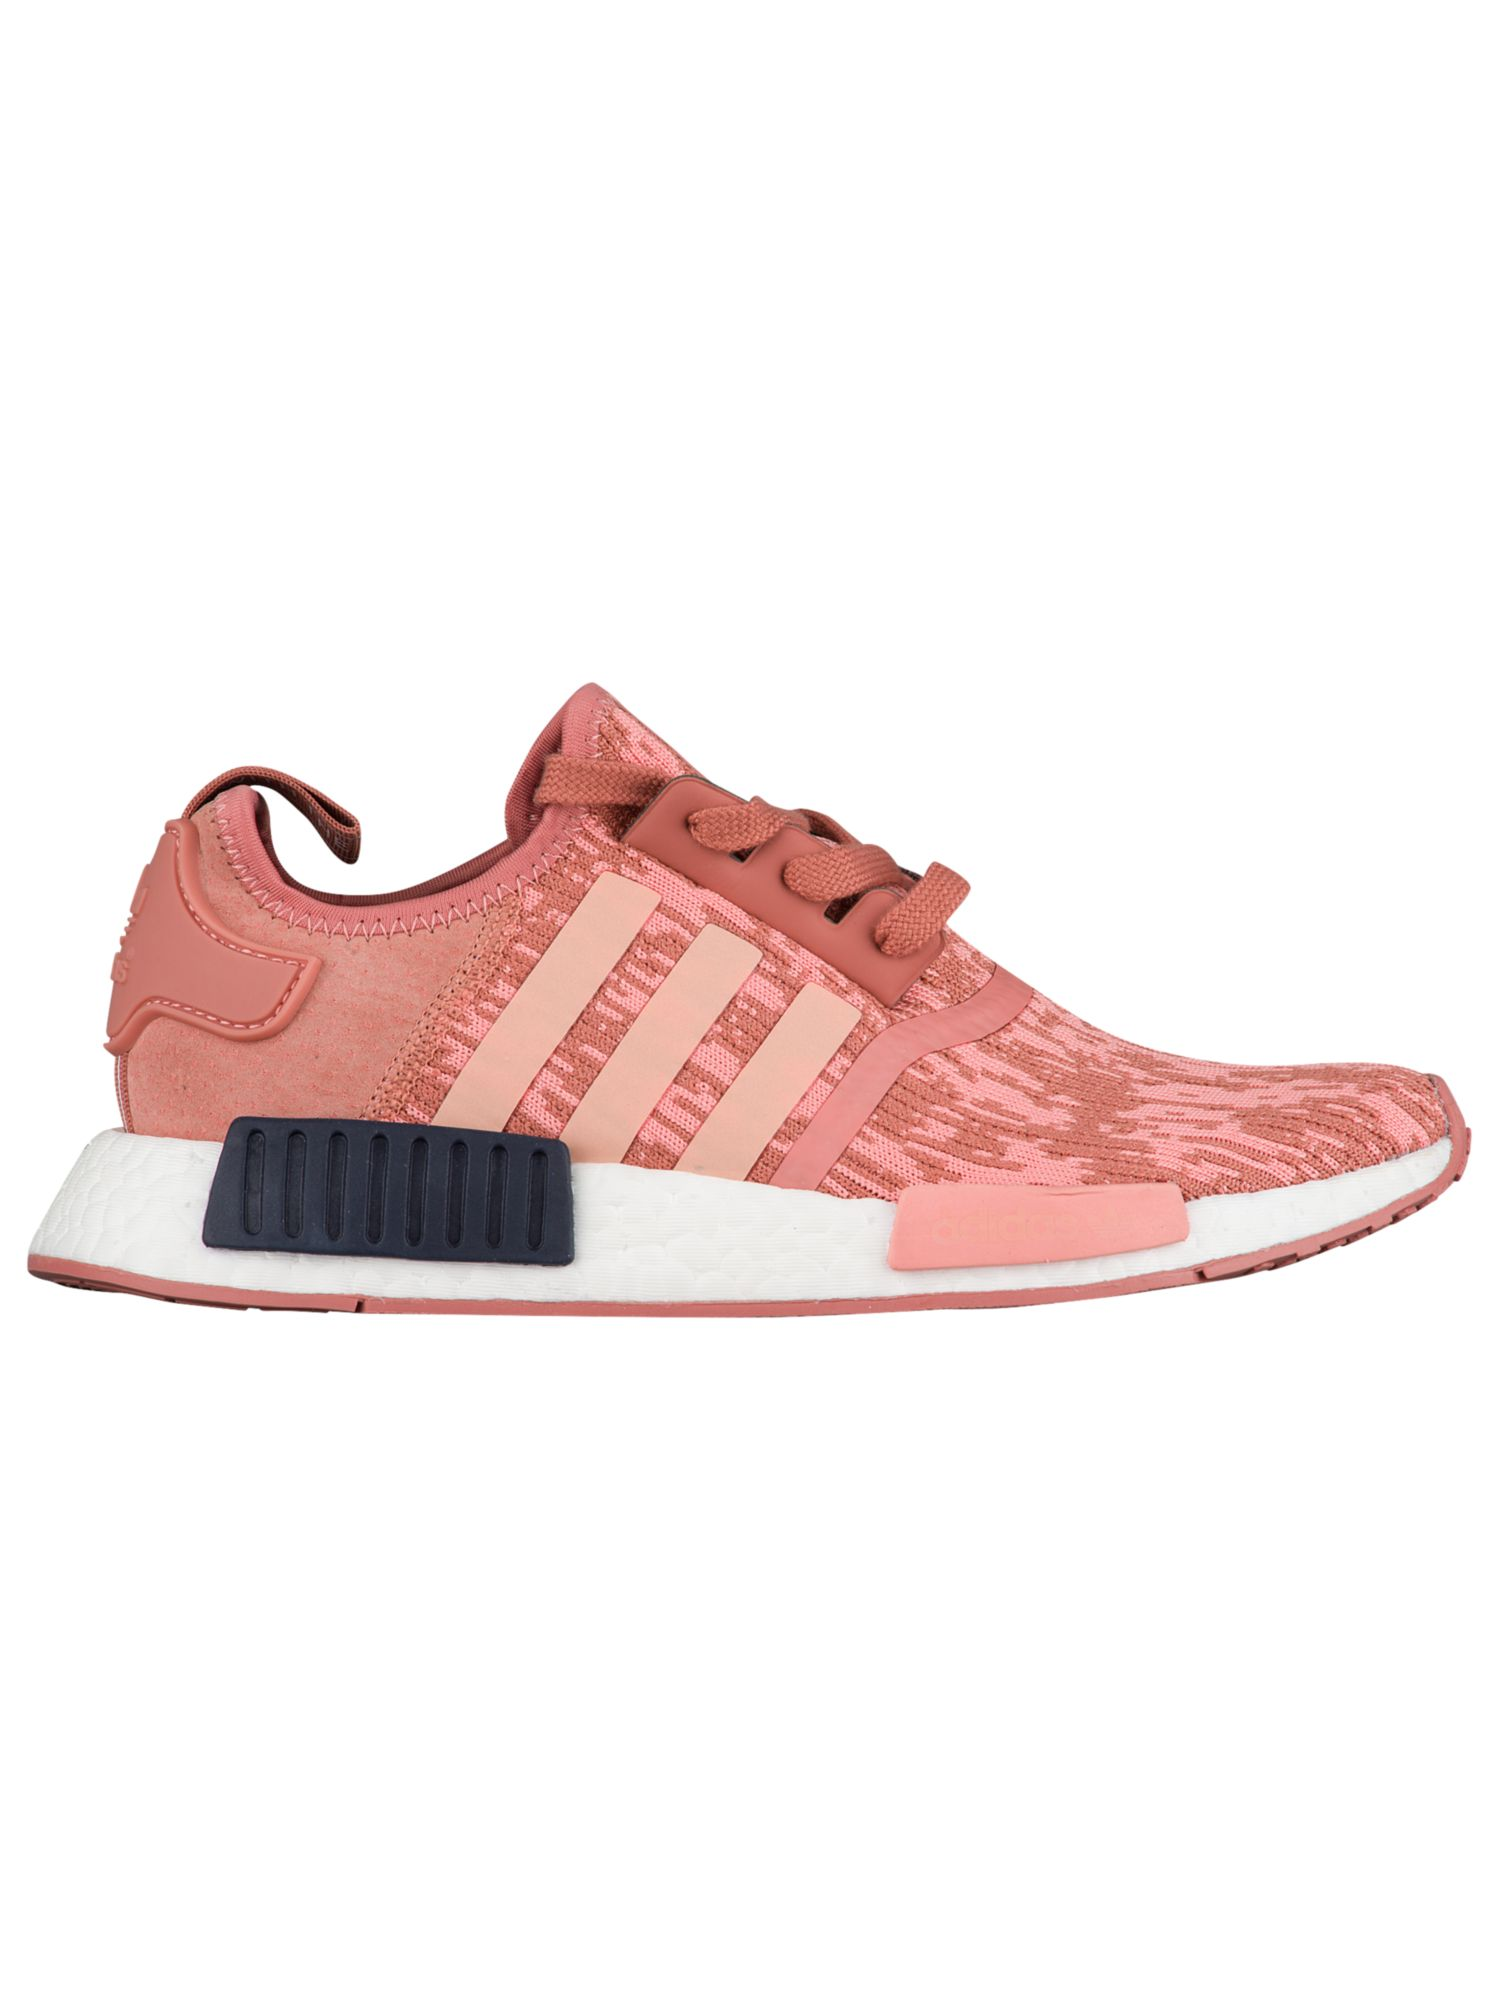 b93aa13417182 ... uk adidas originals nmd r1 womens running shoes raw pink trace pink  18c1a 36114